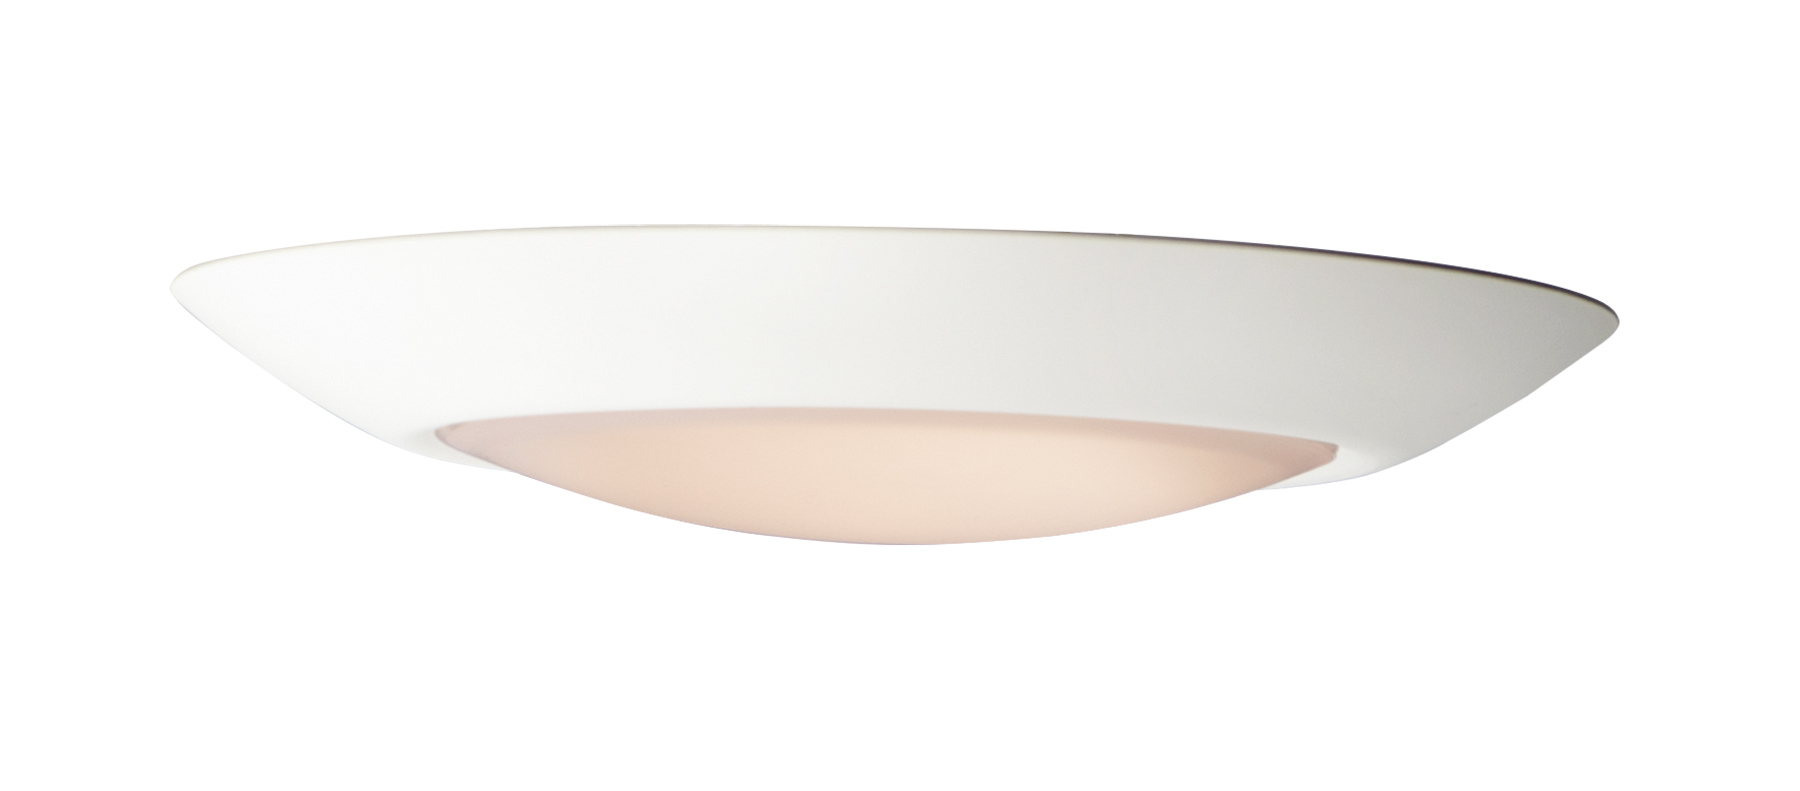 Flush mount ceiling lights flush mount ceiling light fixtures diverse led 75 flush mount 3000k new aloadofball Images